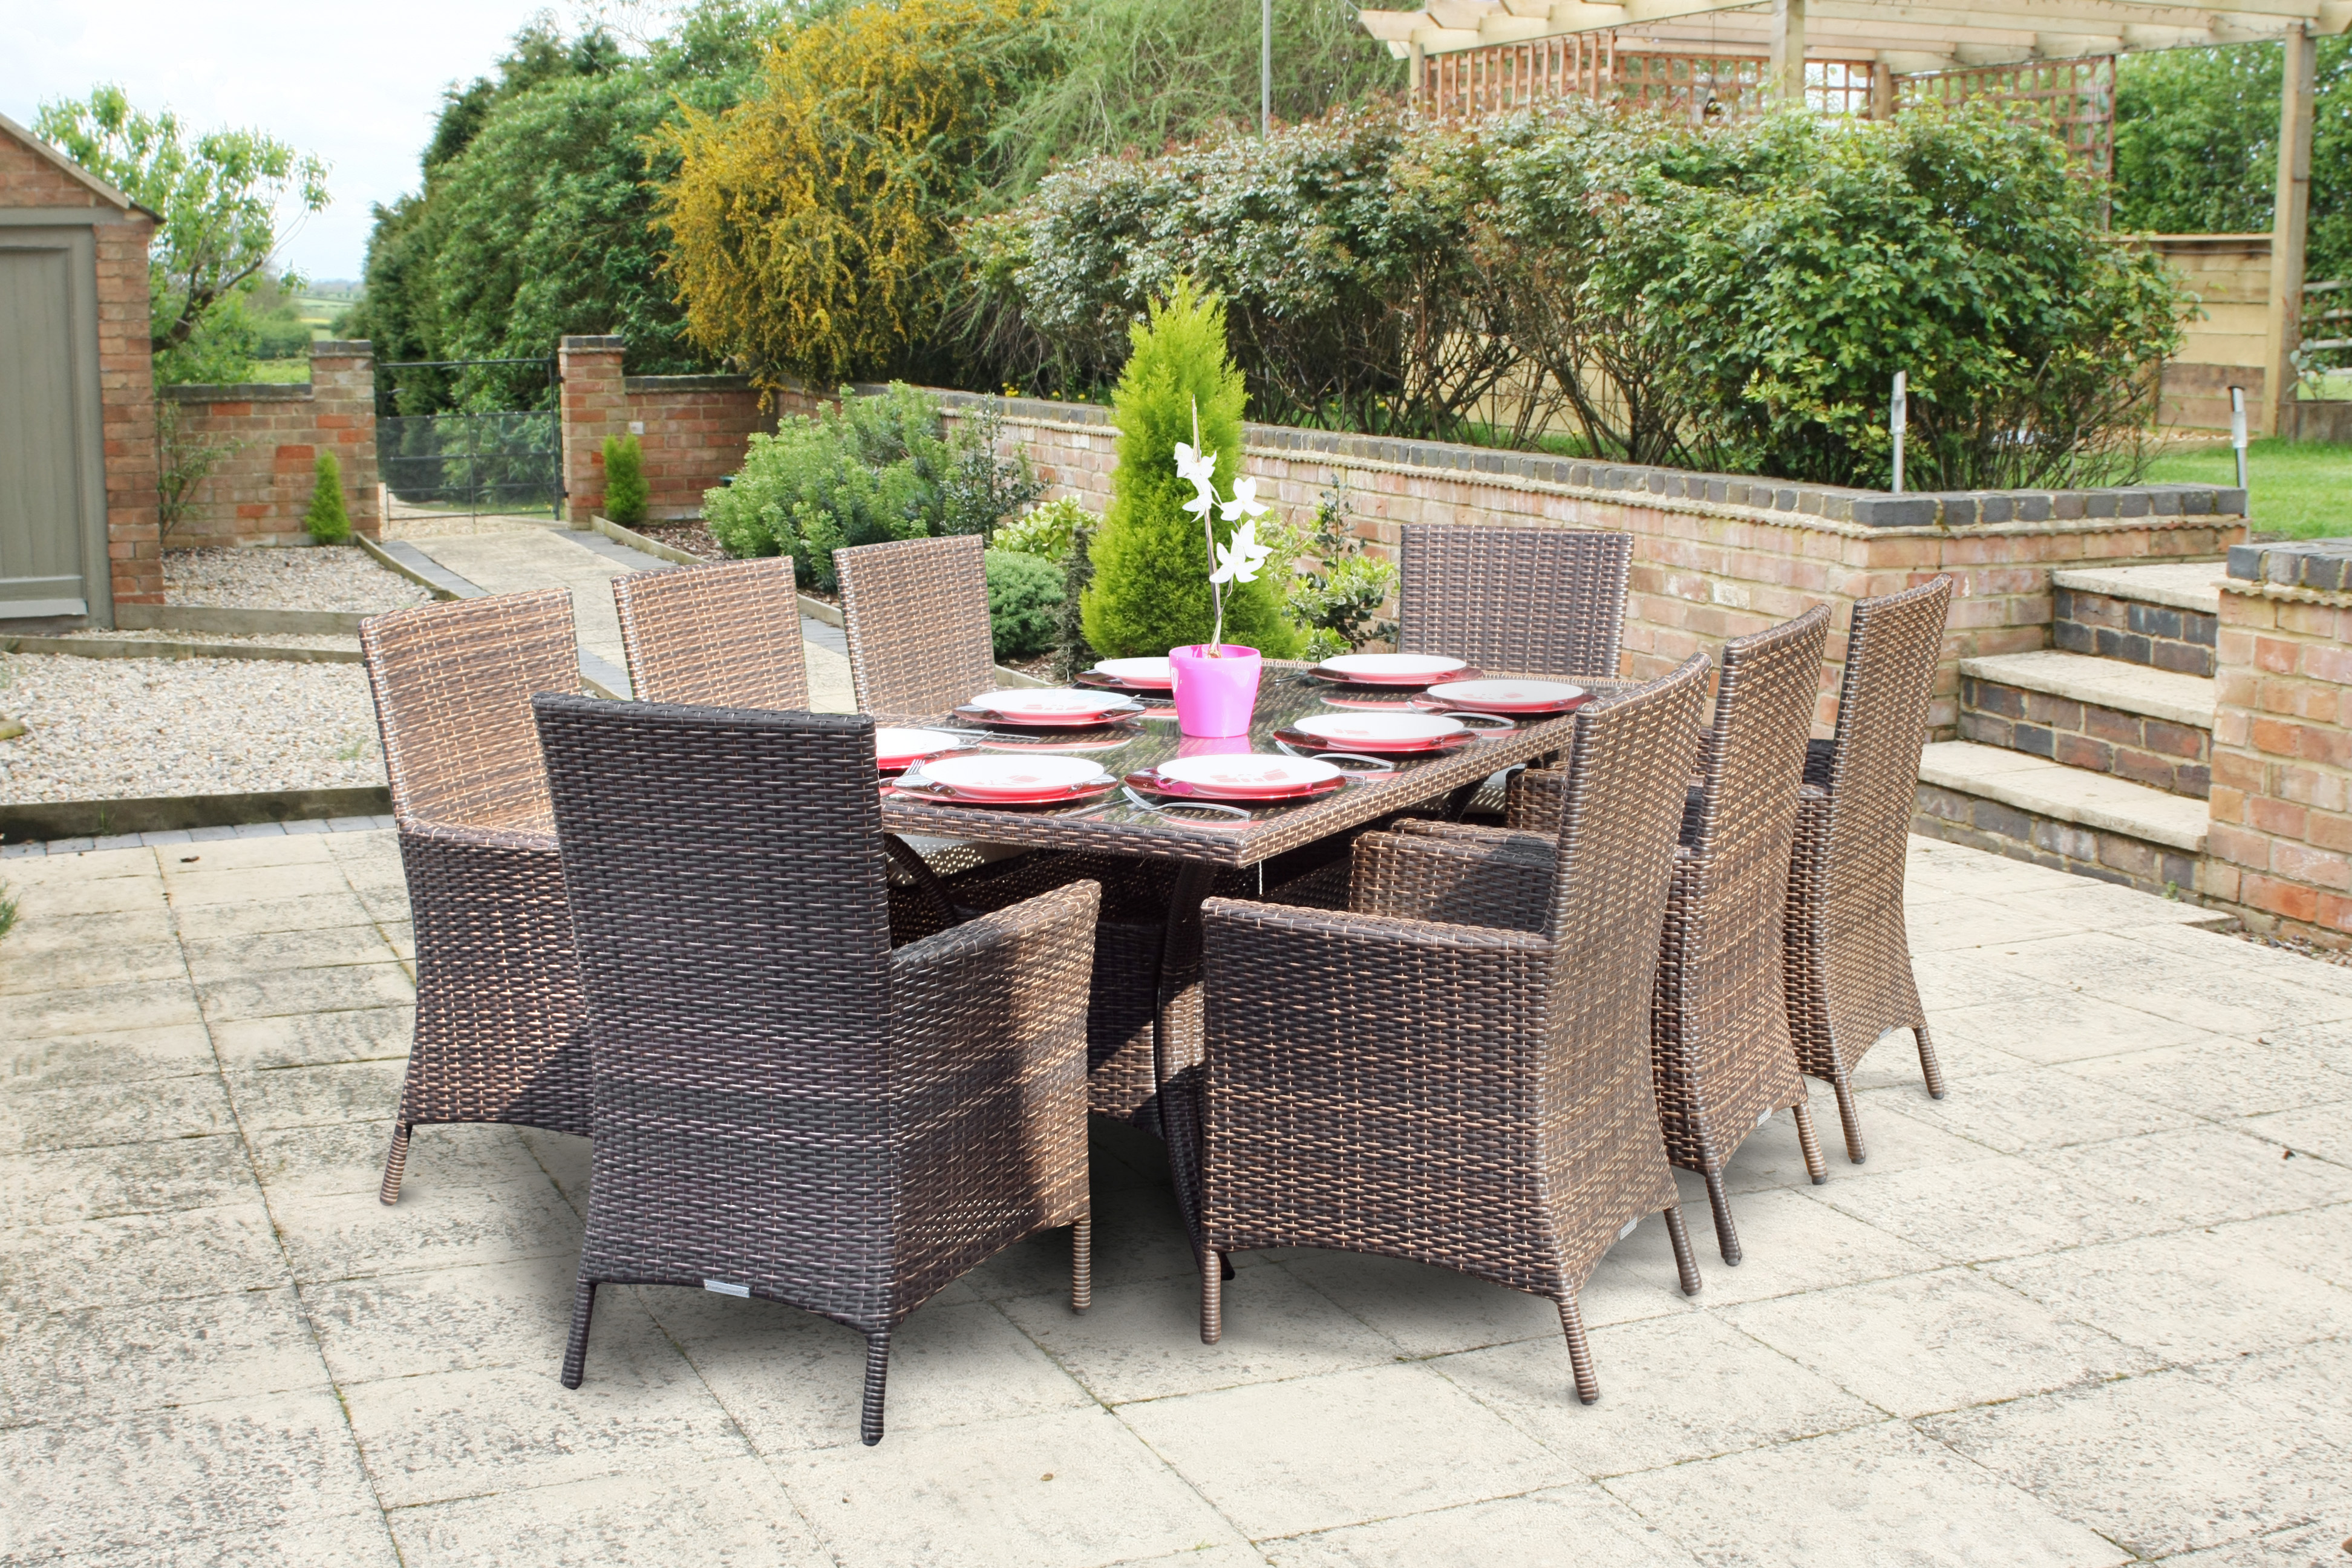 Rattan Outdoor Wovenhill Are Proud To Supply Itn News With Rattan Garden ...